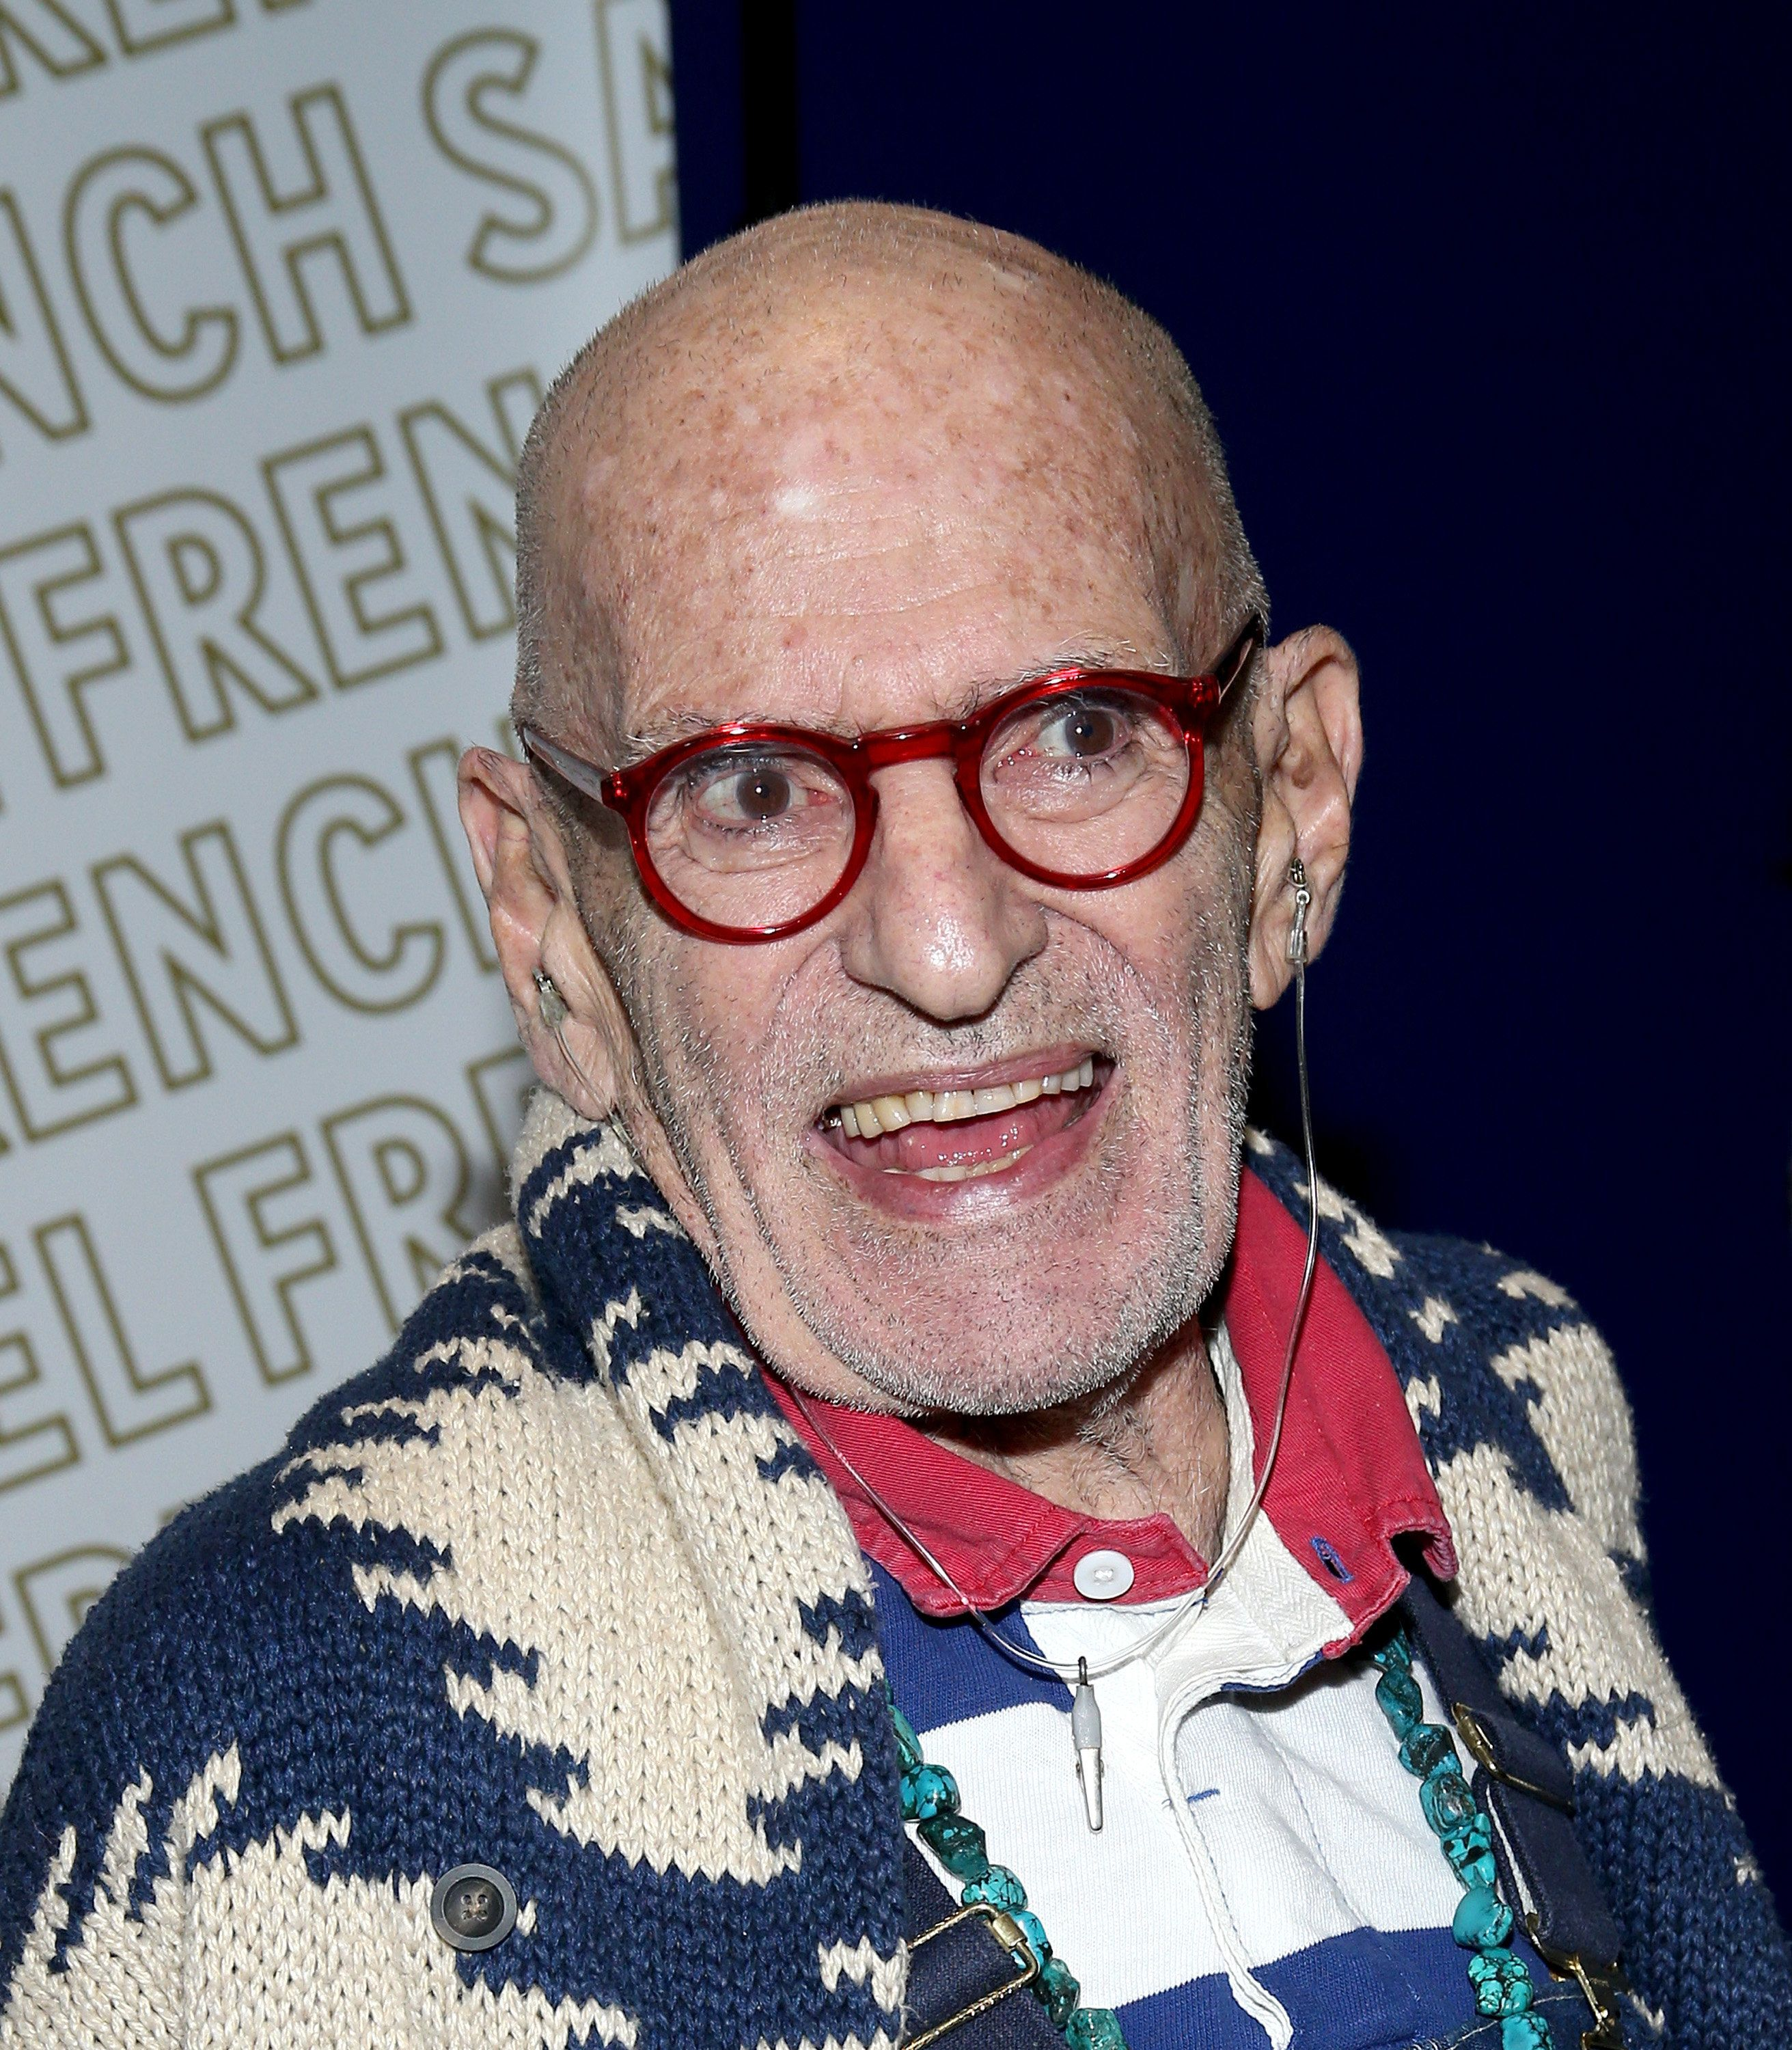 NEW YORK, NY - SEPTEMBER 30:  Larry Kramer attends the 2016 #IdentityWeek Reception at Vineyard Theatre on September 30, 2016 in New York City.  (Photo by Paul Zimmerman/WireImage)